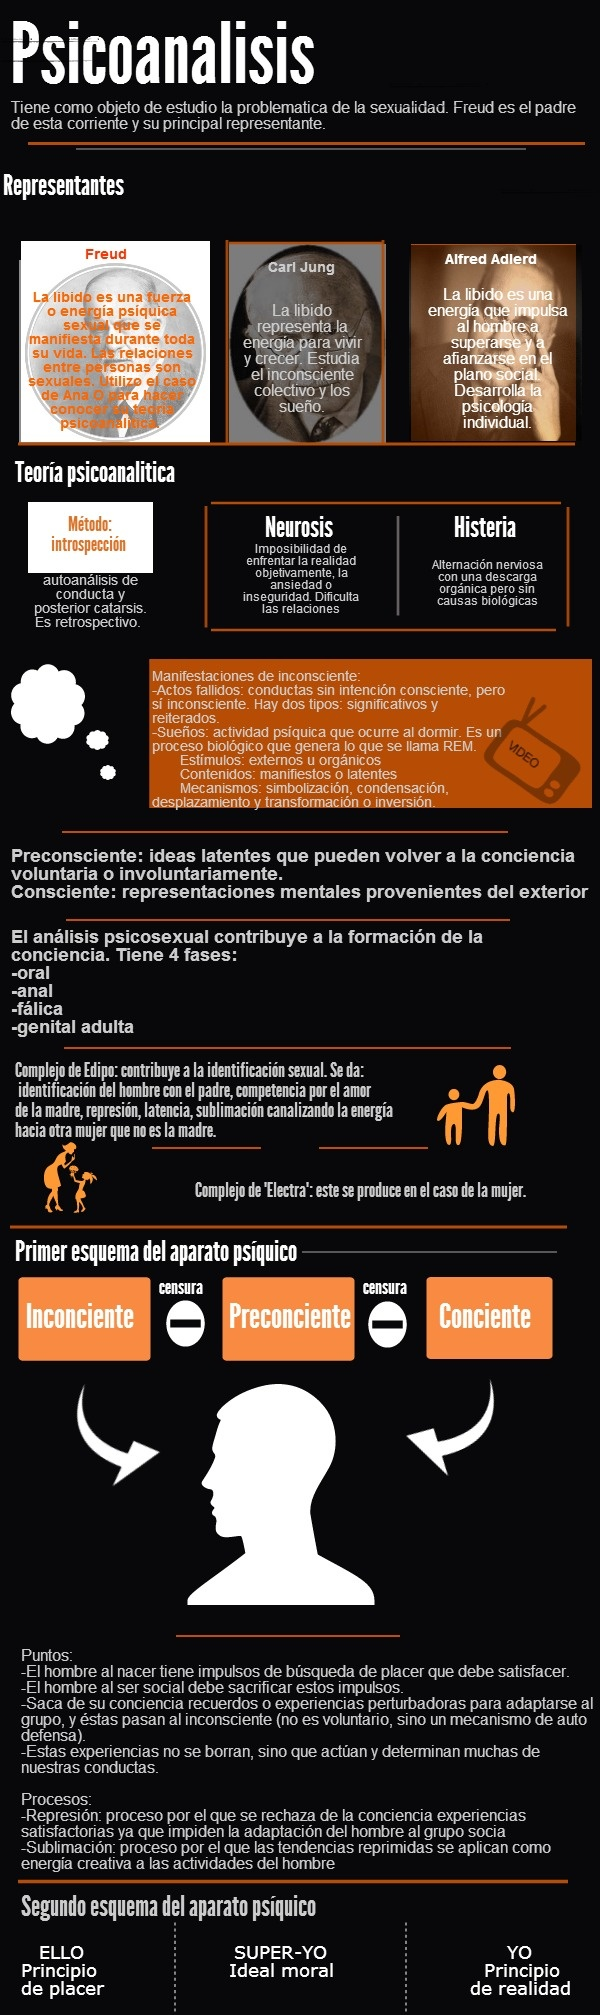 psicoanalisis | @Piktochart Infographic http://www.andreamele.com.ar/